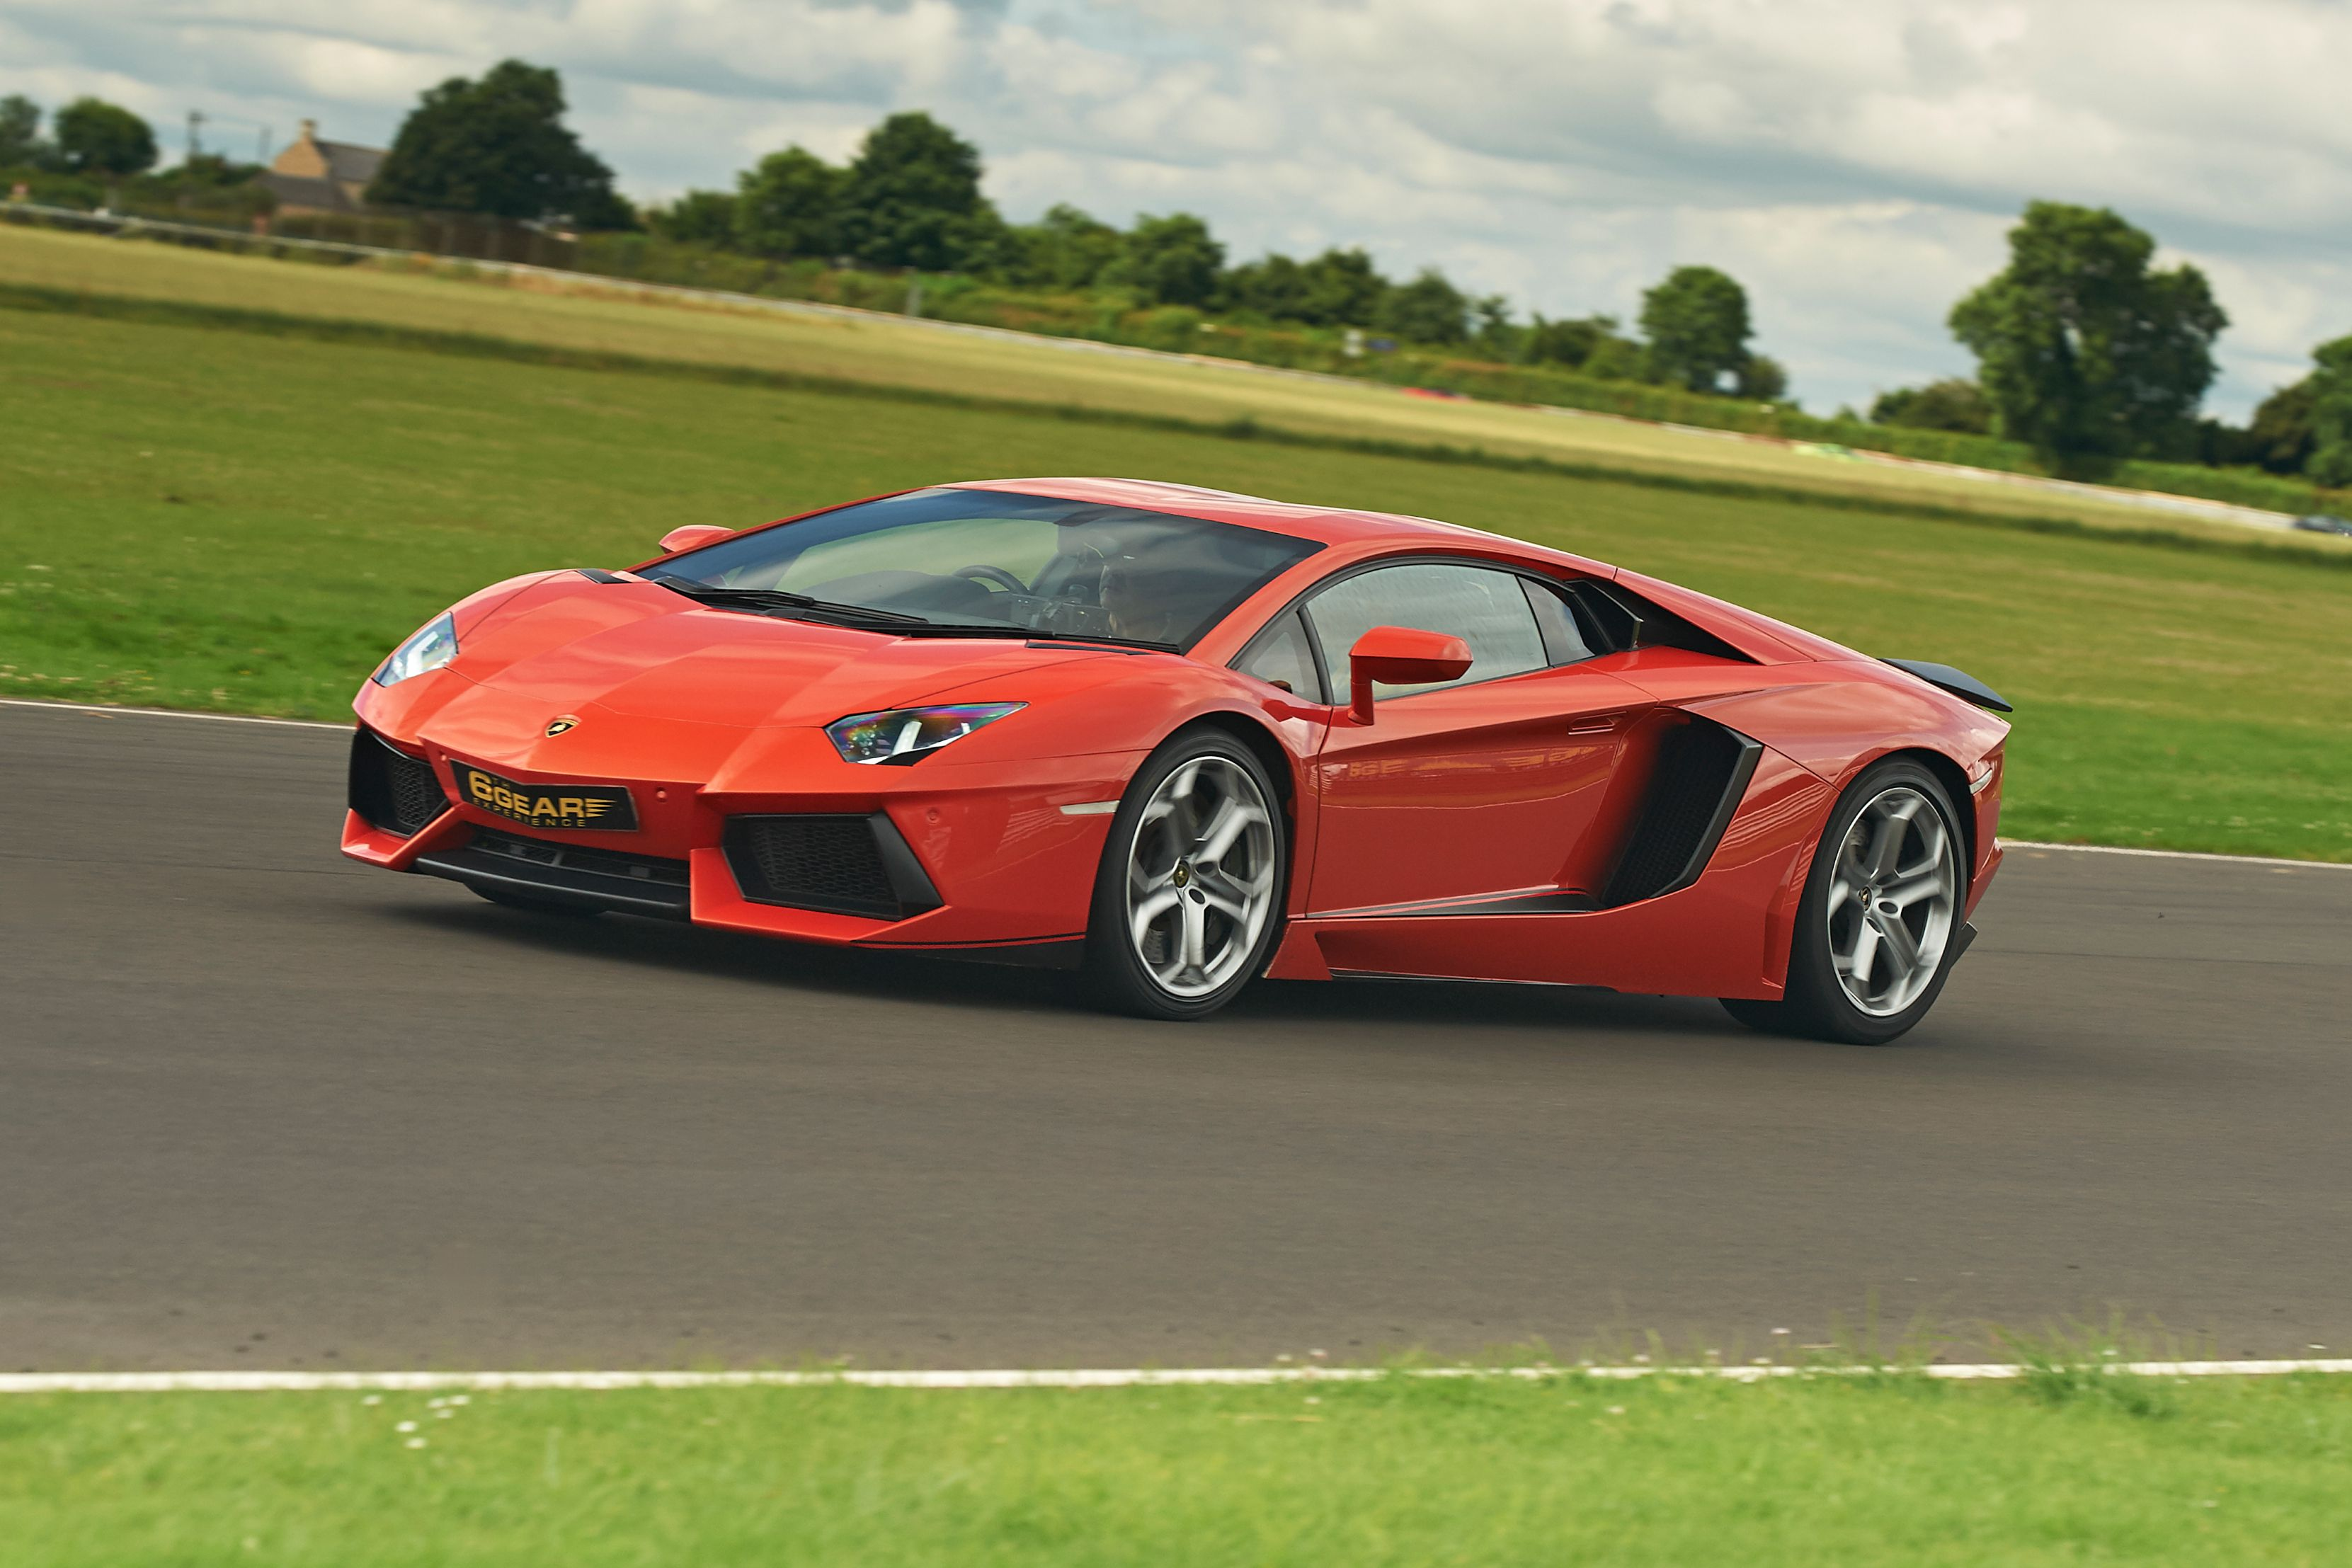 Audi Driving Experience >> Supreme Supercar Driving Experience | From 6th Gear